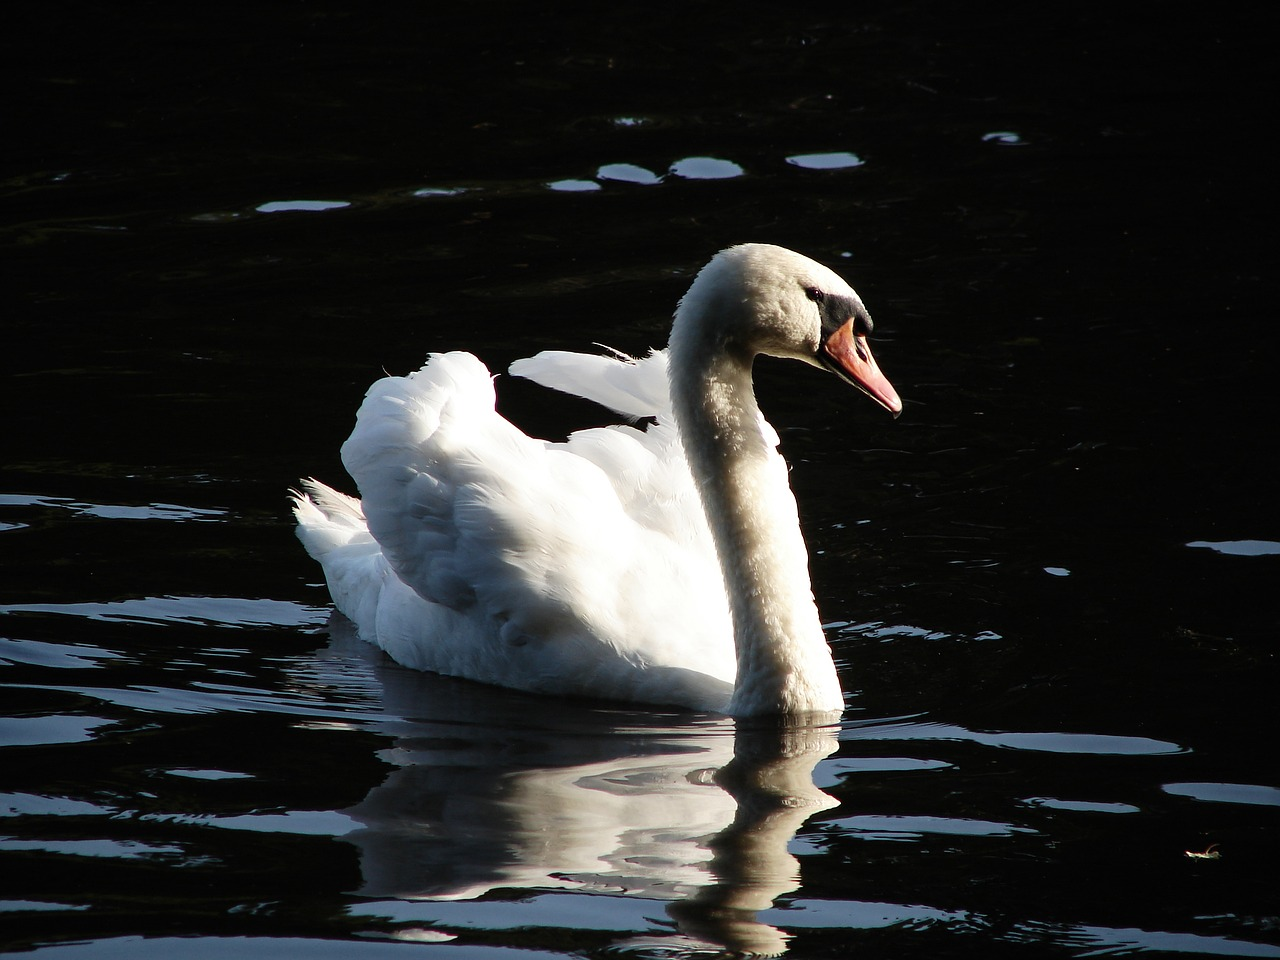 FREE waterfowl Stock Photos from PikWizard